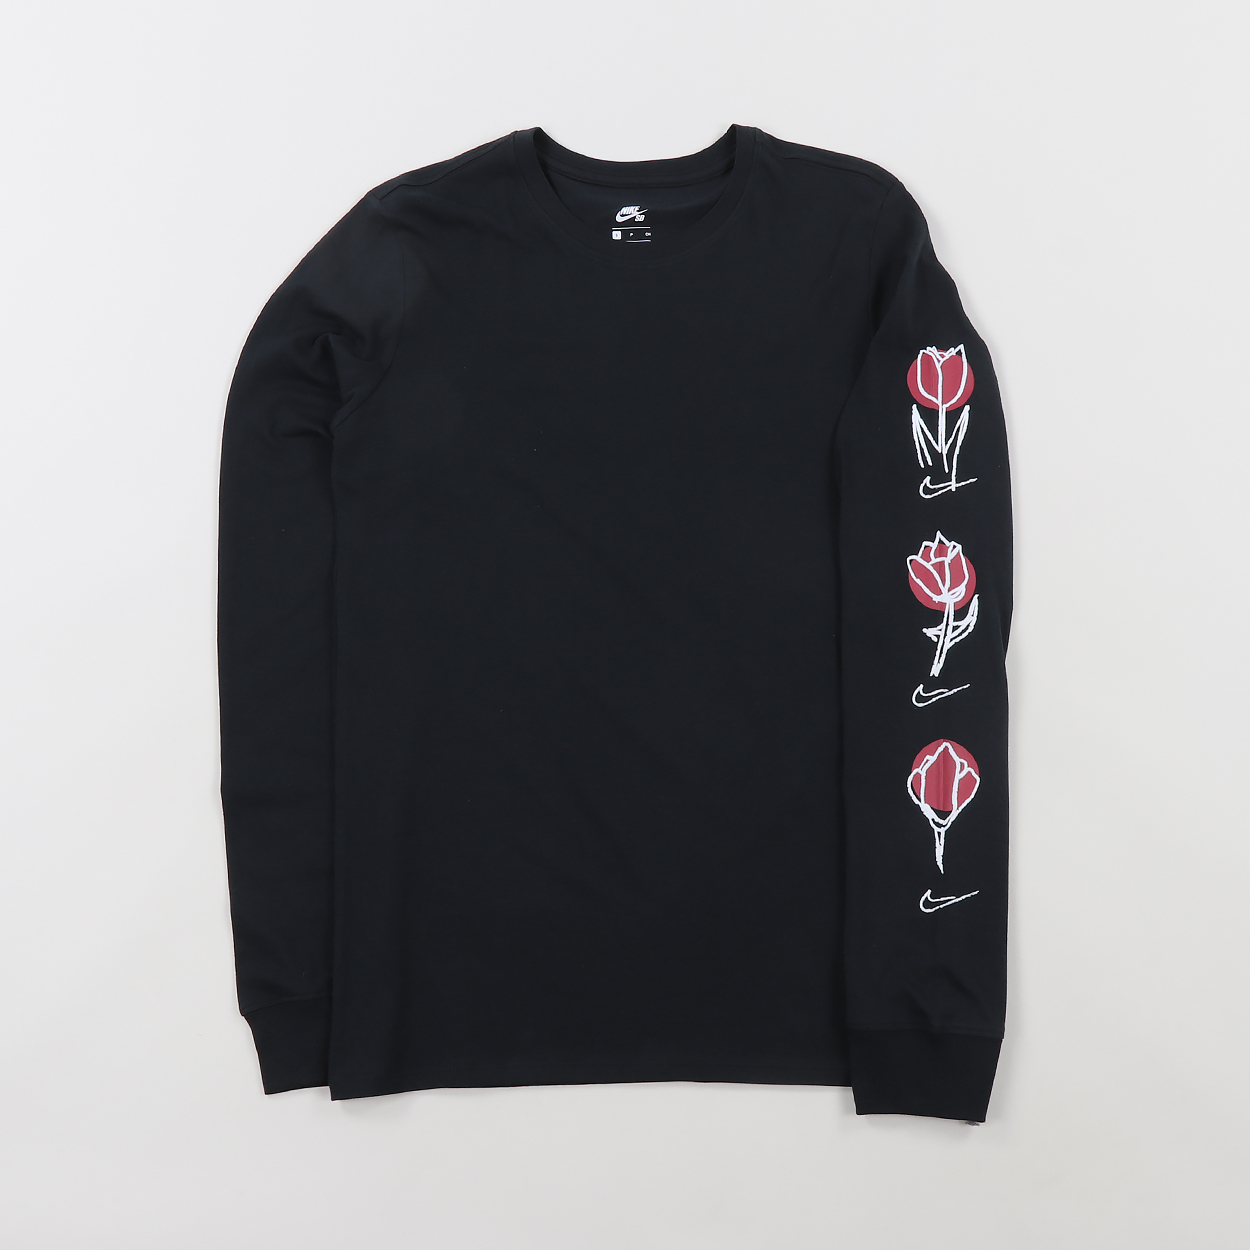 40c14a19380 A long sleeved tee from Nike SB with a Roses graphic printed to the back  and sleeve. Made from 100% cotton with a ribbed crew neck and cuffs.